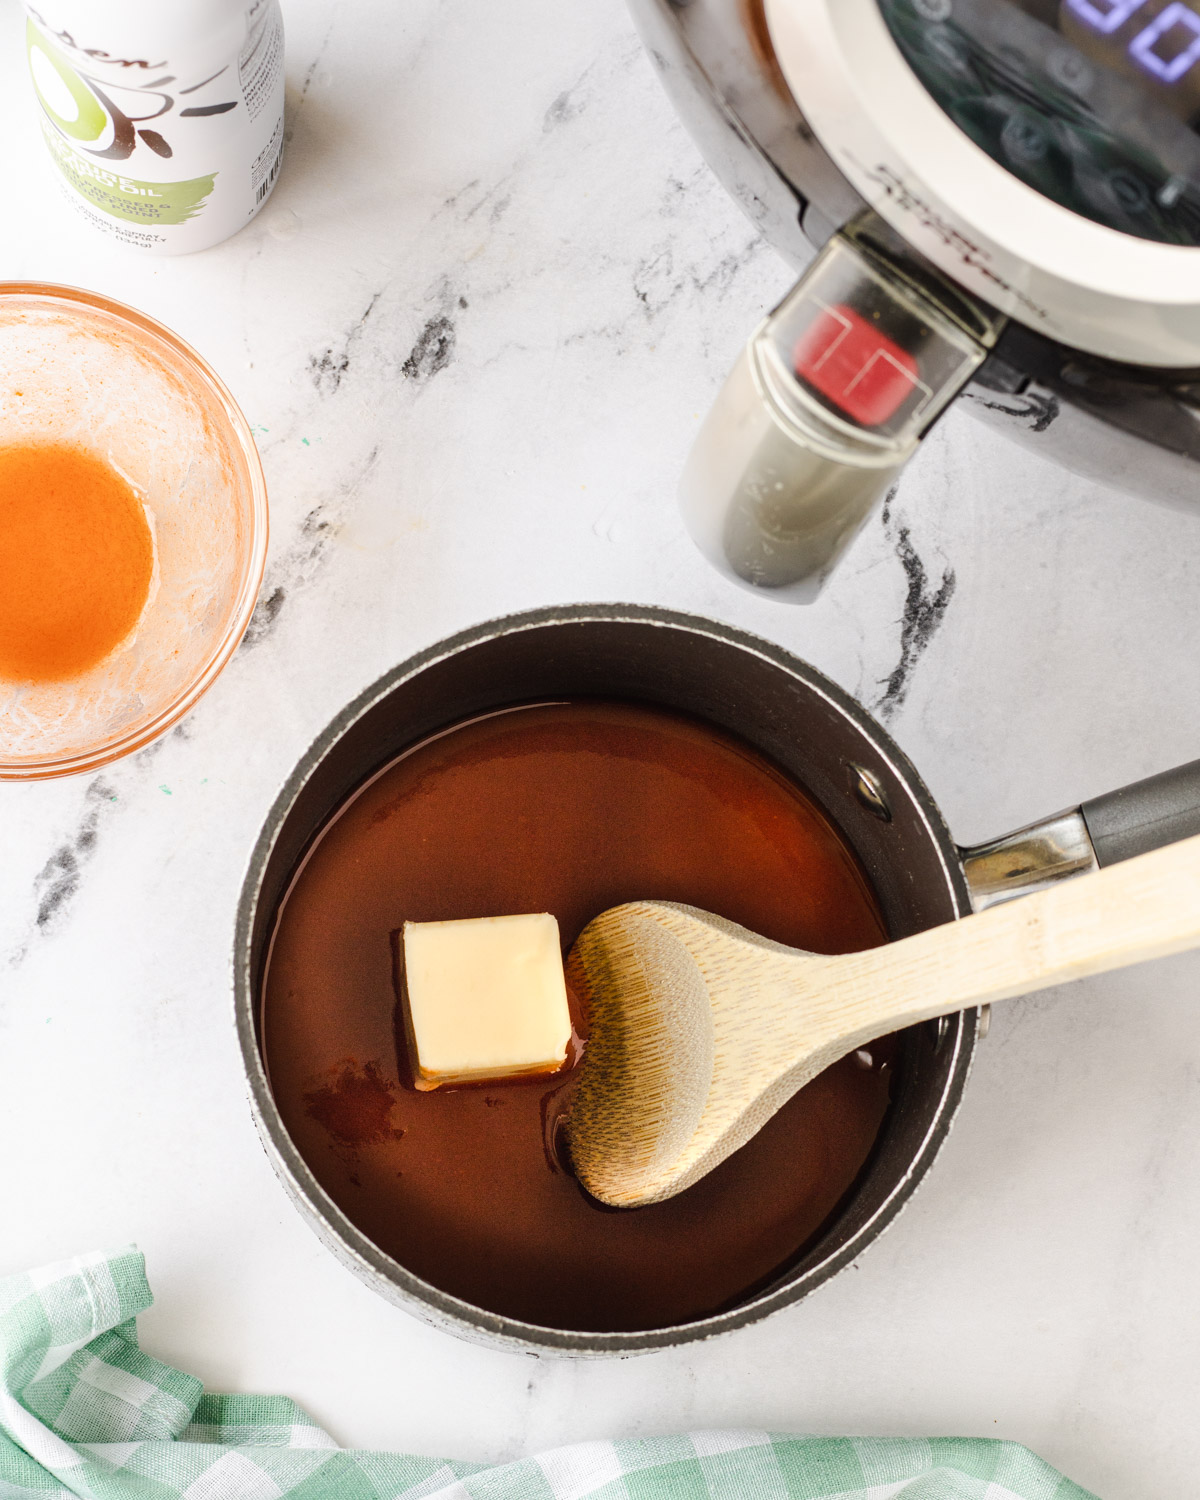 Wing sauce in a saucepan with a wooden spoon.